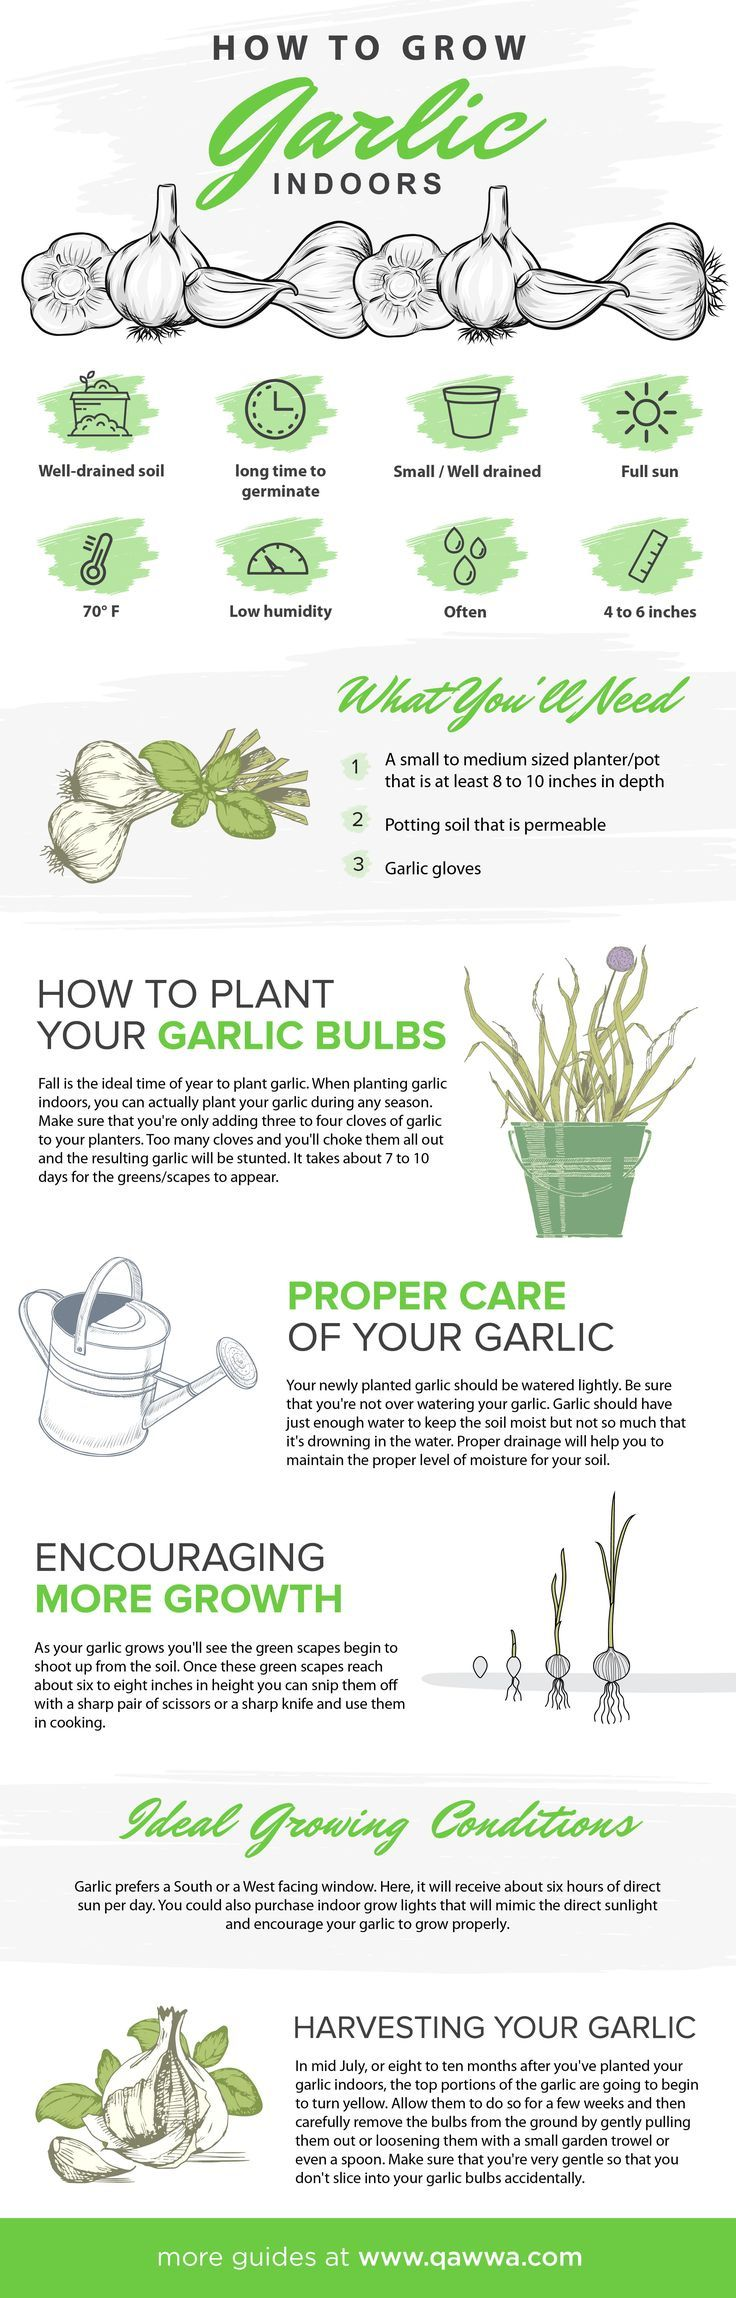 How To Grow Garlic Indoors From Seed To Harvest If You Need More Light Visit Our Website Www Qawwa Com Growing Garlic Grow Garlic Indoors Growing Seeds